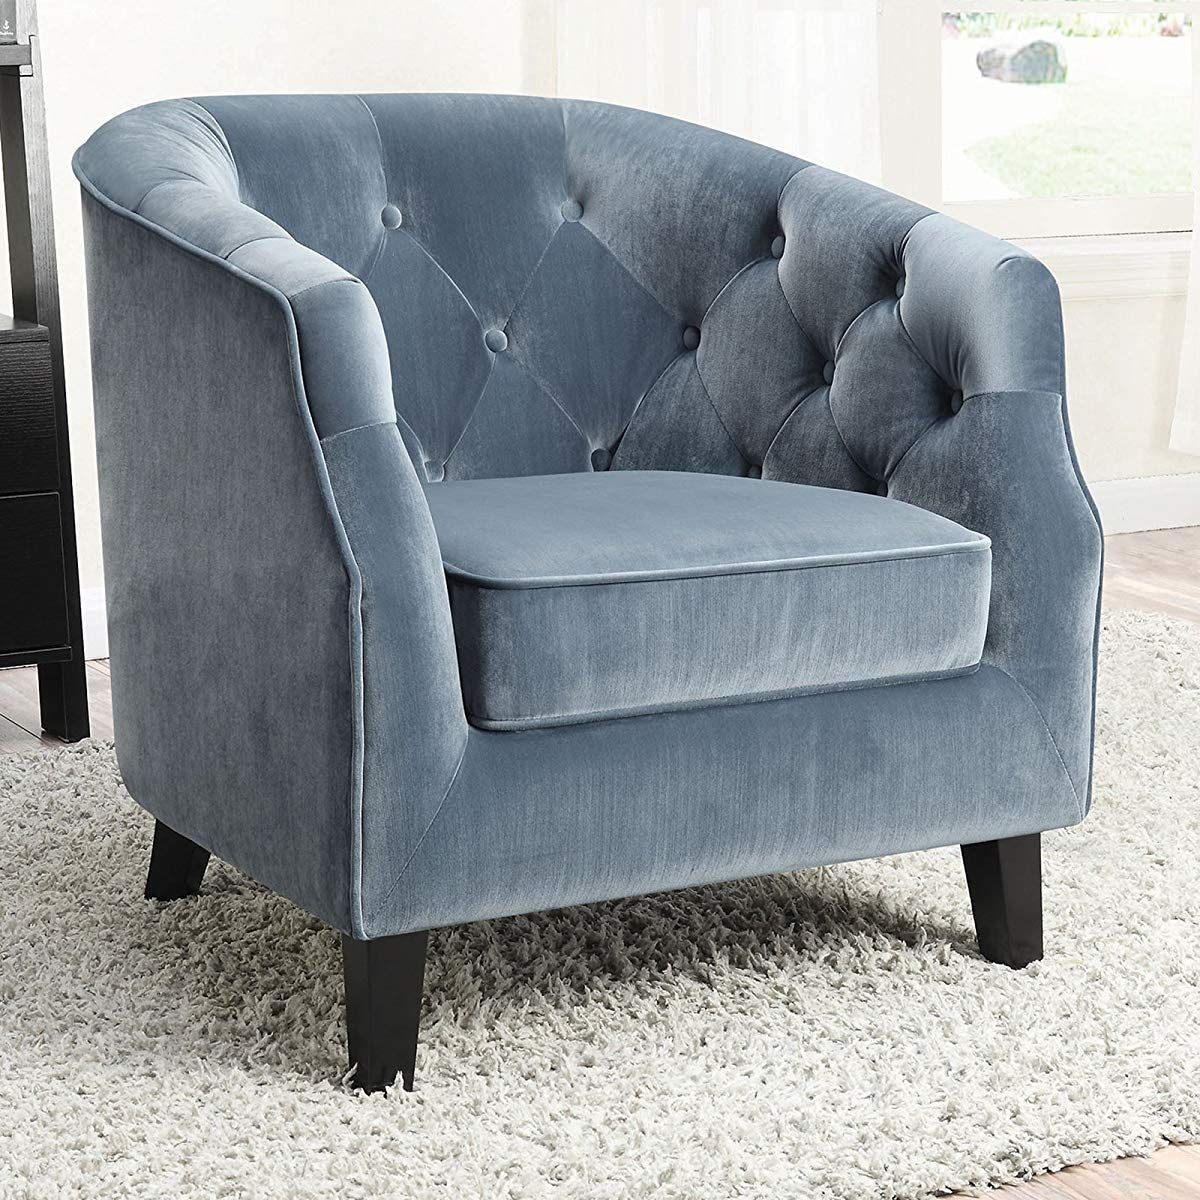 Inspiration about Velvet Upholstered Tufted Accent Chair, Blue | Accent Chair With Regard To Velvet Tufted Accent Chairs (#12 of 20)